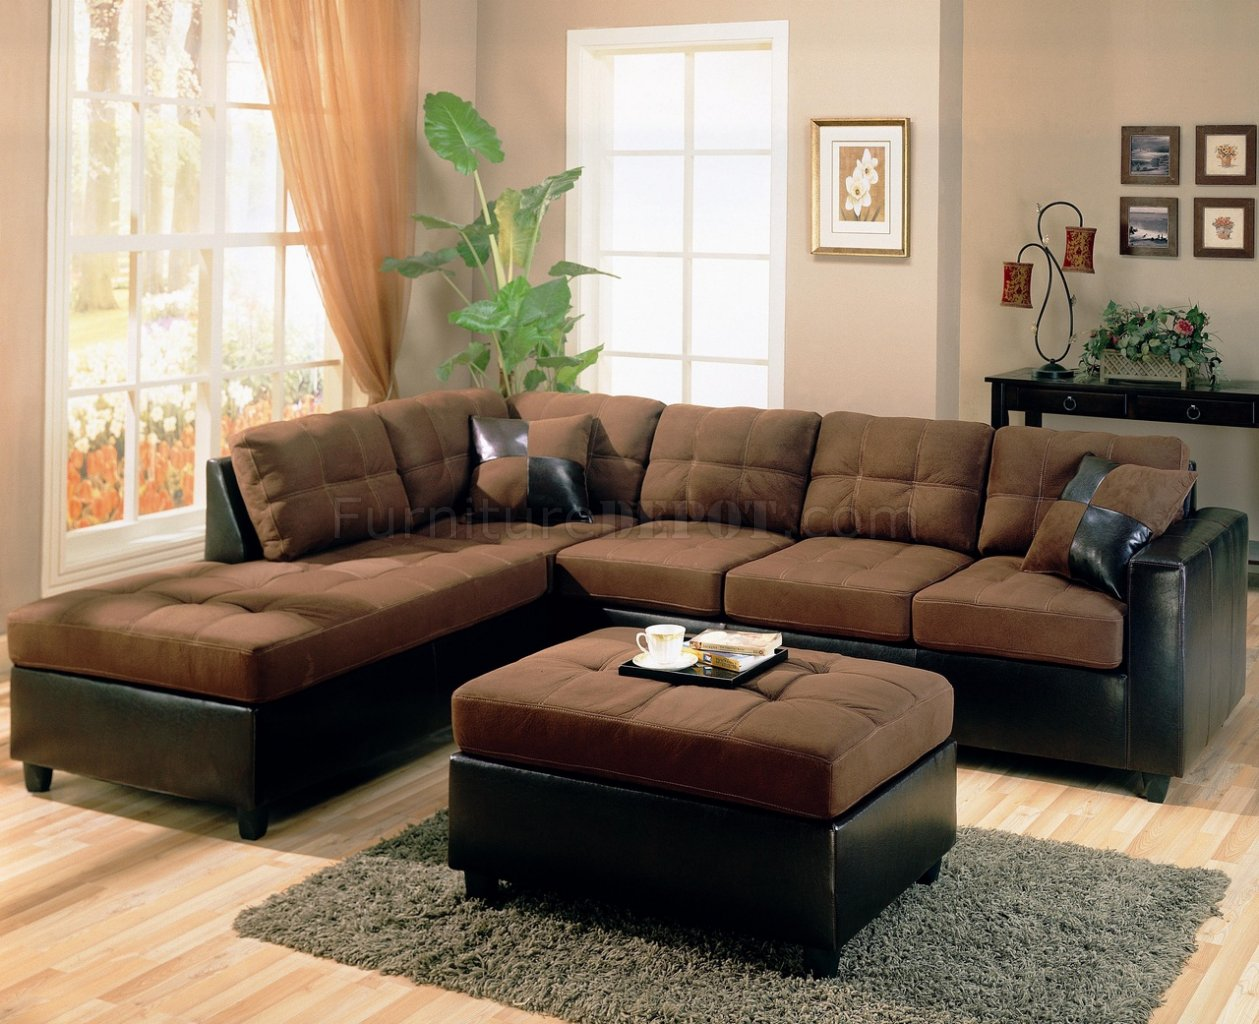 Sectional Living Room Couch Trendy Design Two Tone Modern Sectional Sofa 500655 Chocolate Dark Brown